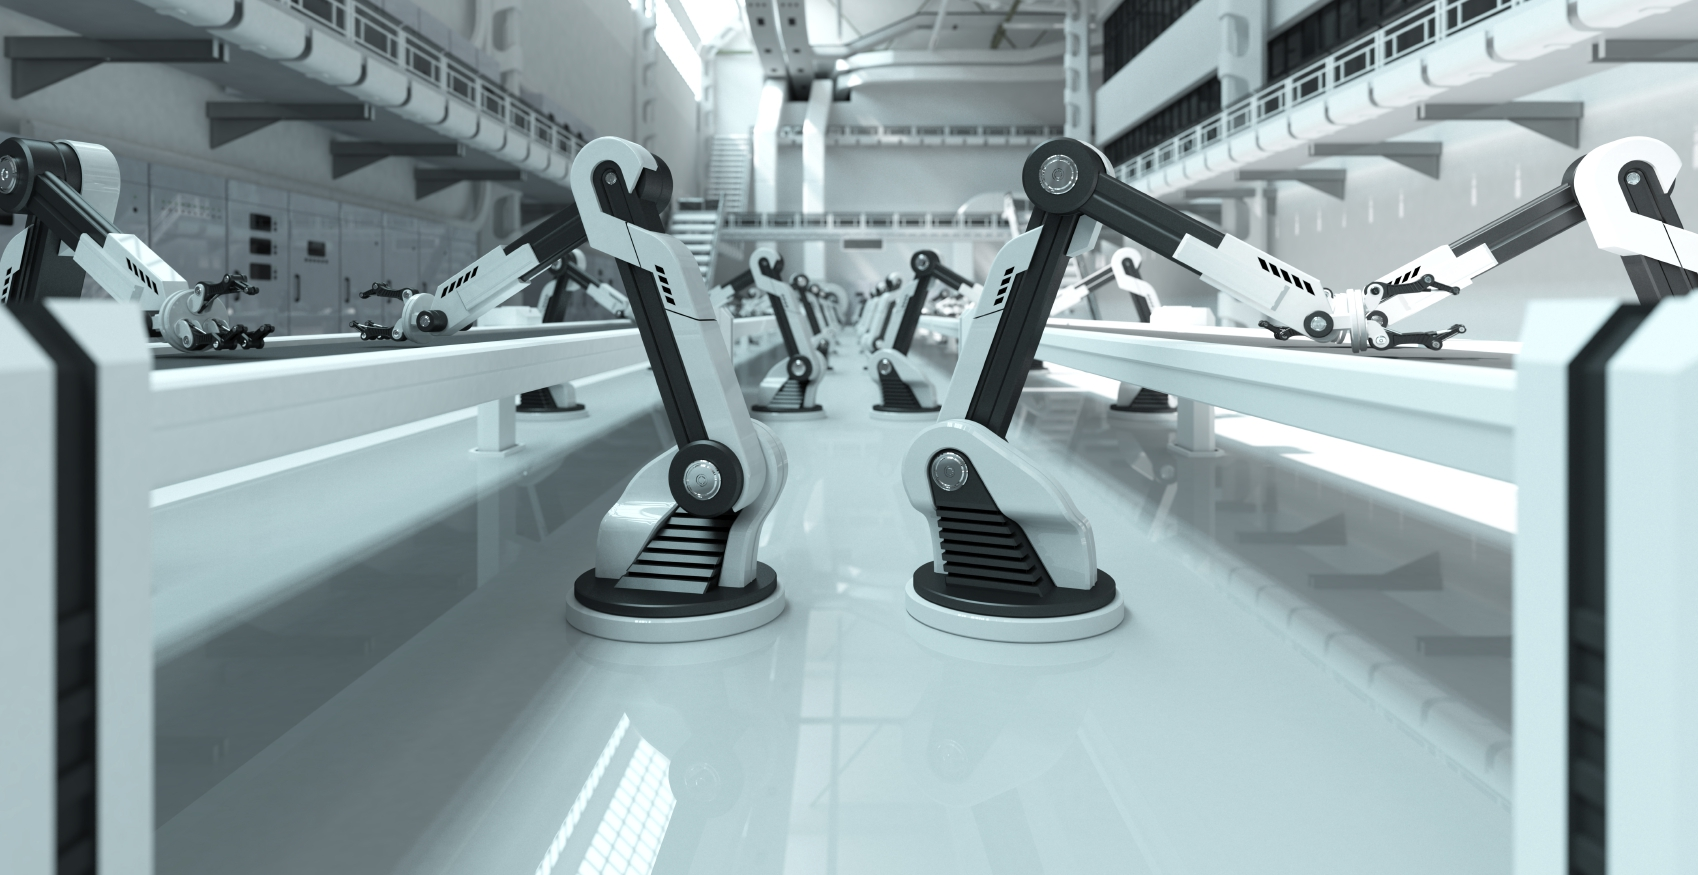 What happens if robots take the jobs?